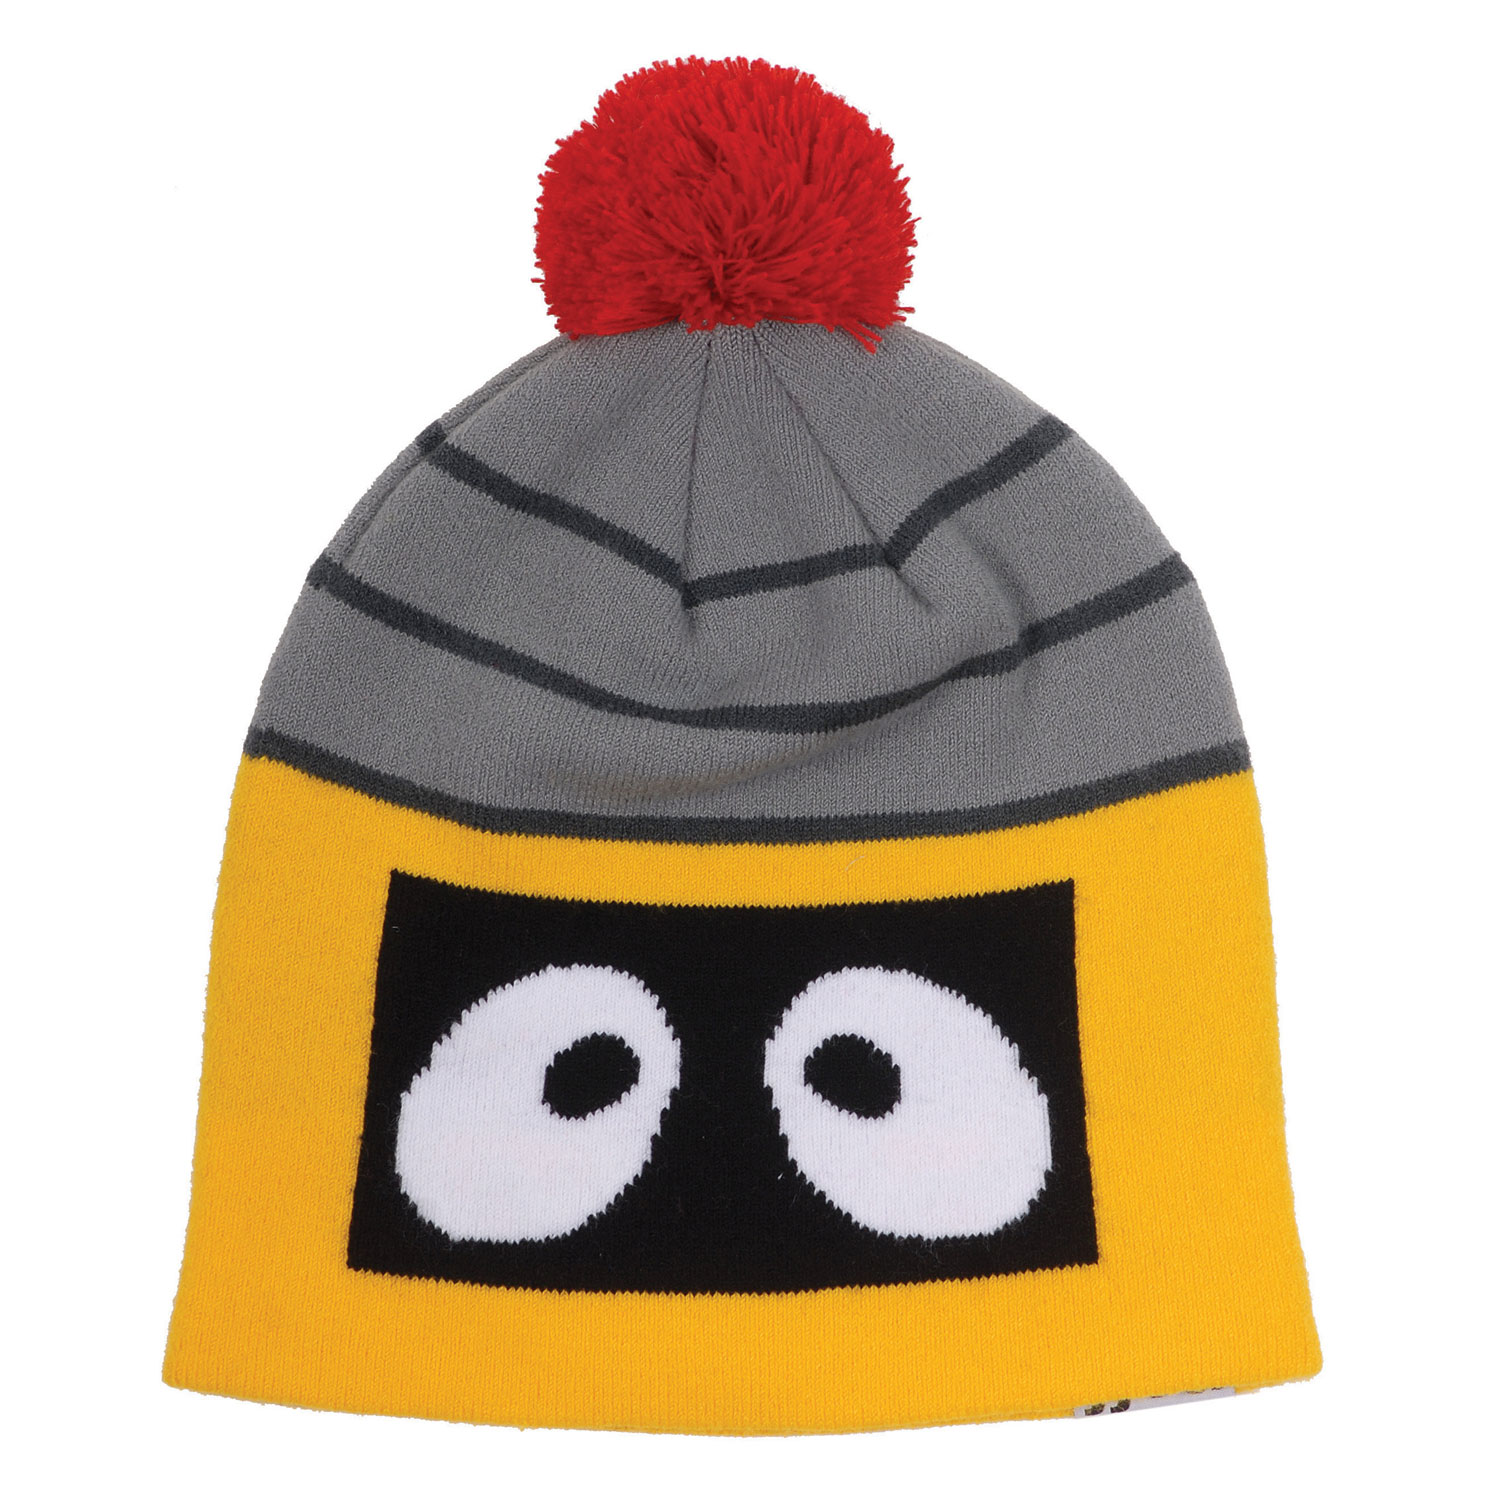 Snowboard Neff Plex Beanie is a great product made with 100% acrylic material. Would be great to buy the kids as it stretches for fast growing children. Is able to cover their ears to keep warm during those frosty days.Key Features of the Neff Plex Beanie:  100% Acrylic - $15.95